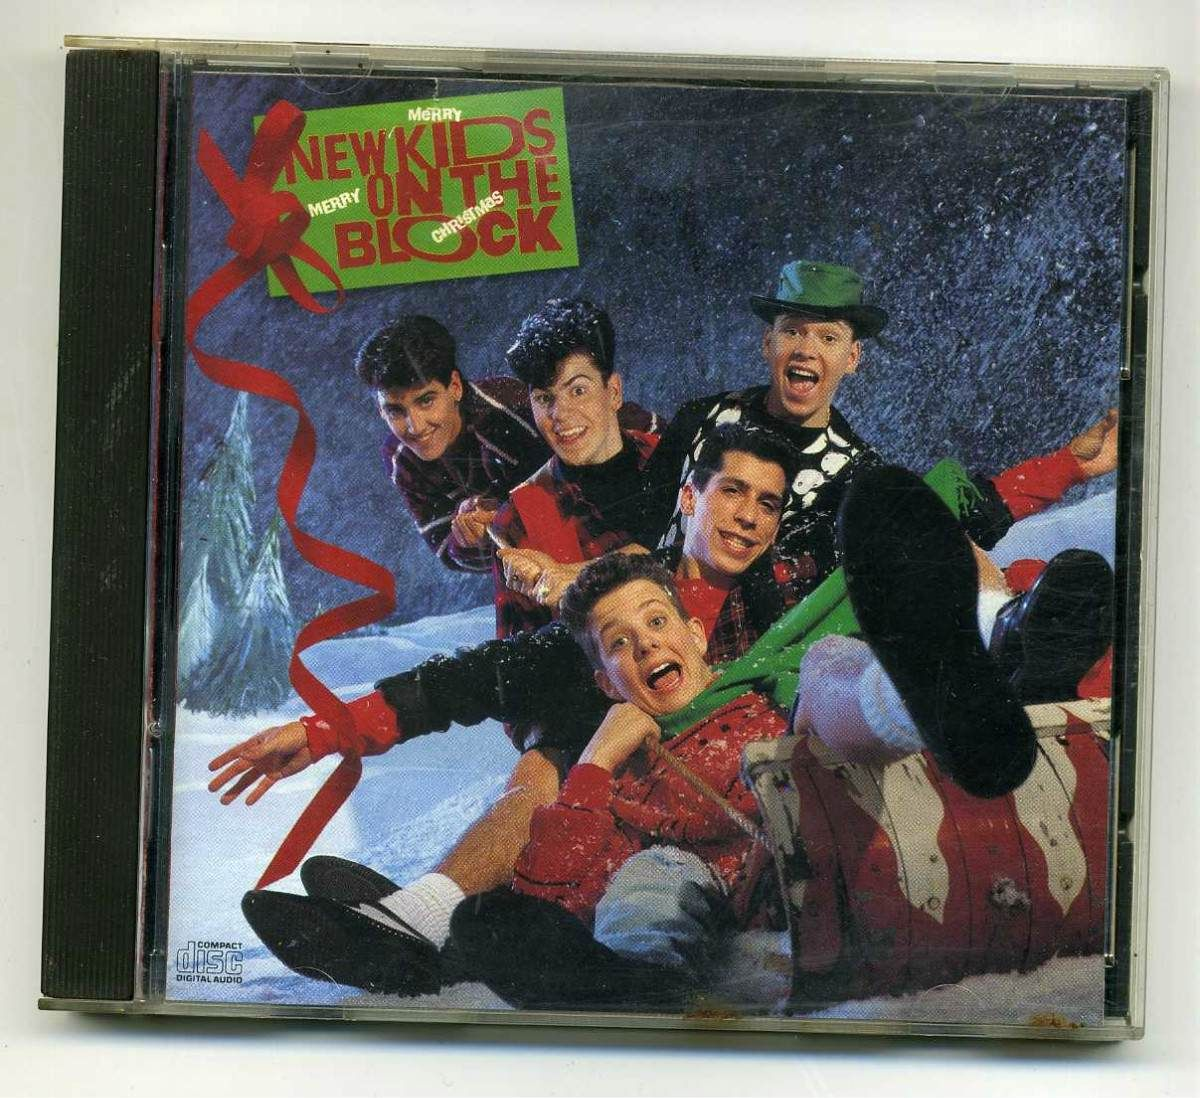 new kids on the block merry merry christmas | New Kids On The Block ...